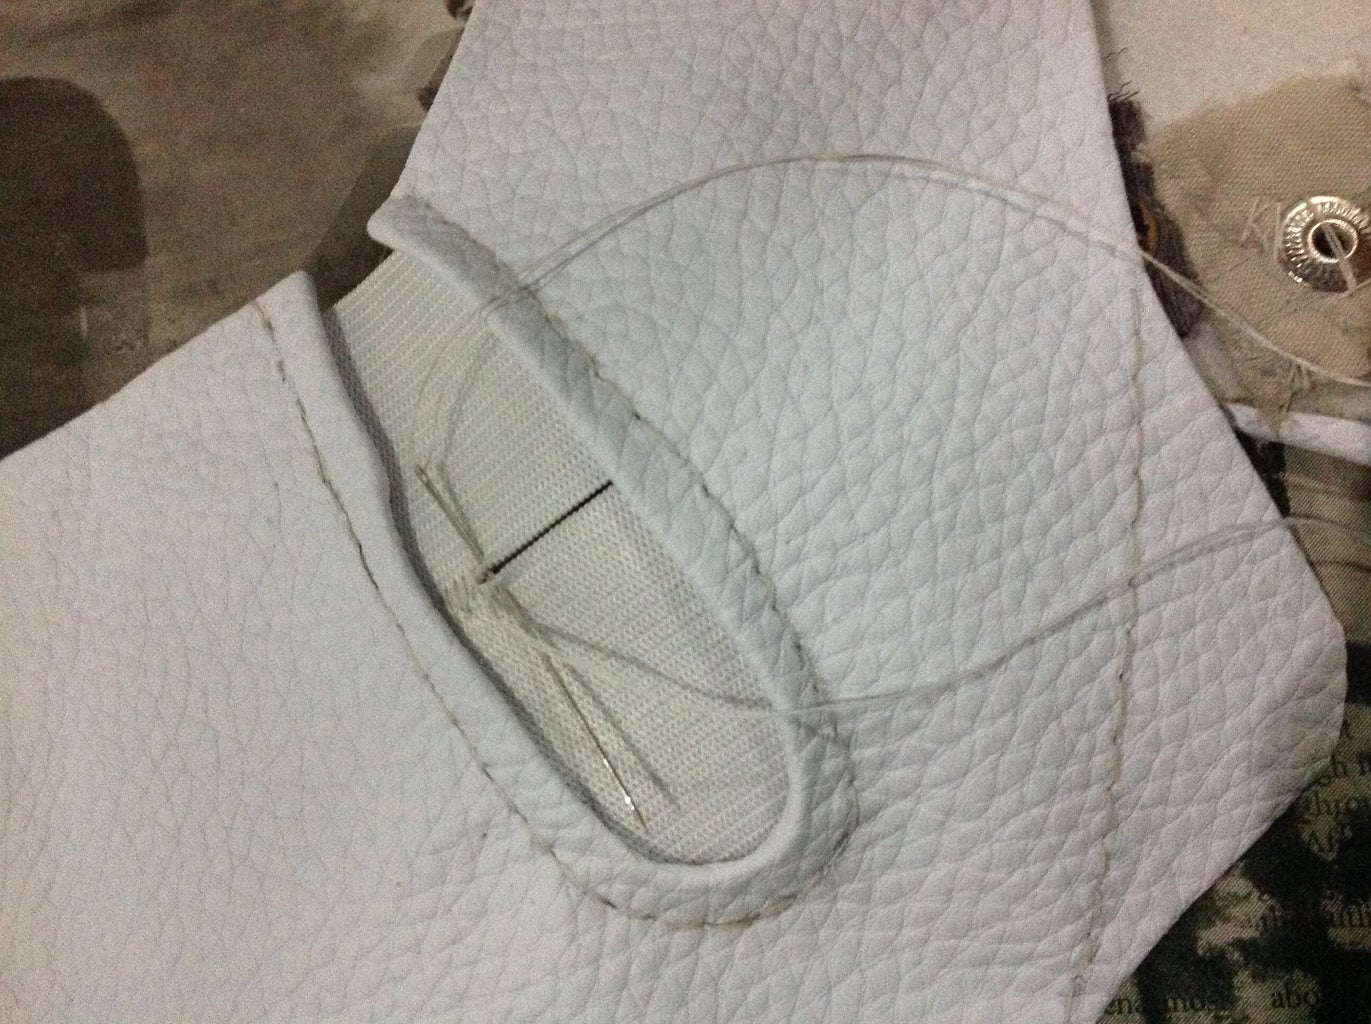 Sewing in the Elastics (side and Bottom)